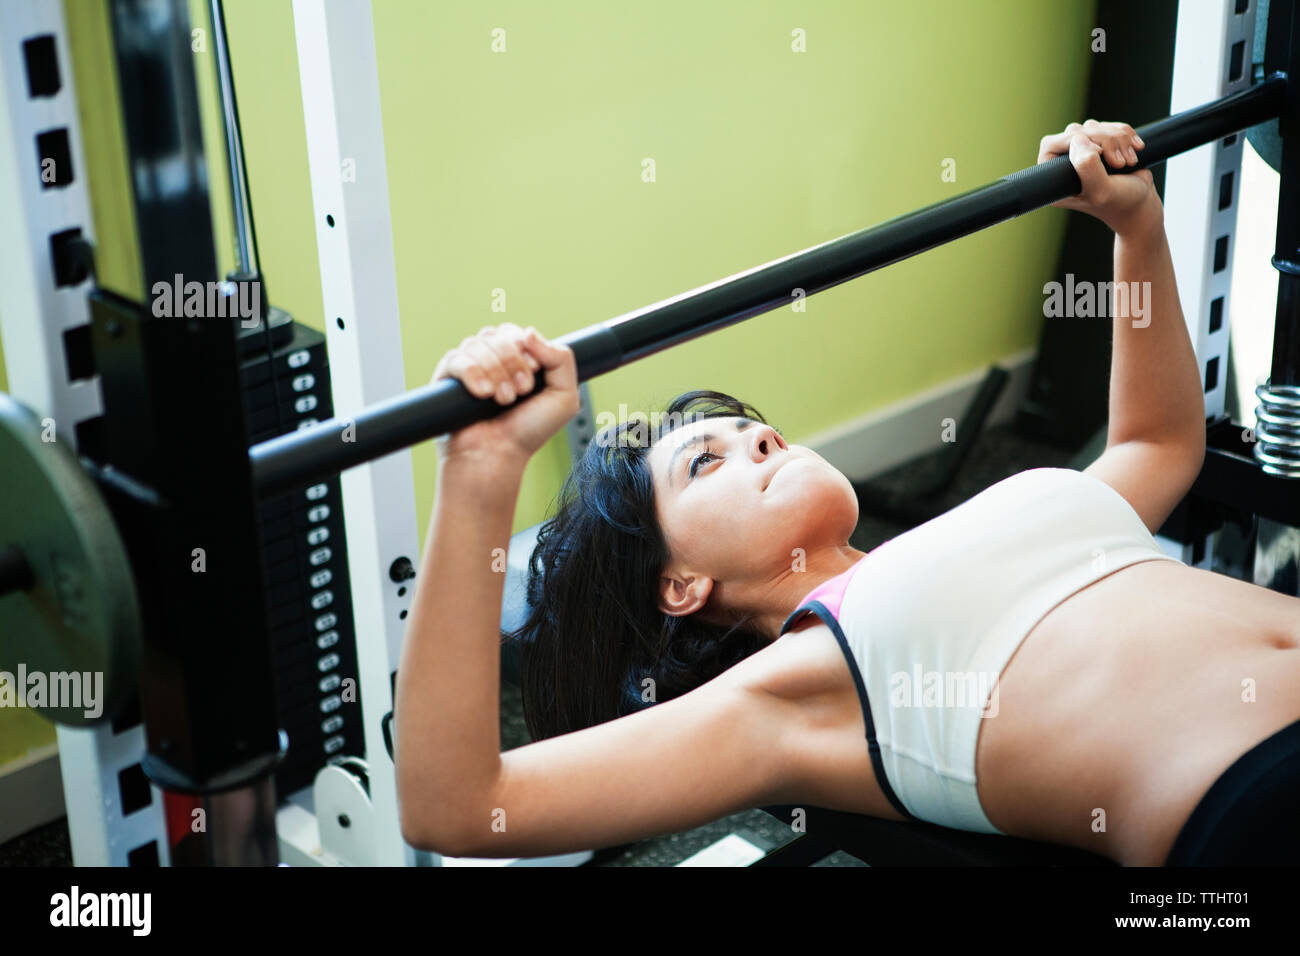 High angle view of woman practicing weights lifting on bench press in gym Stock Photo